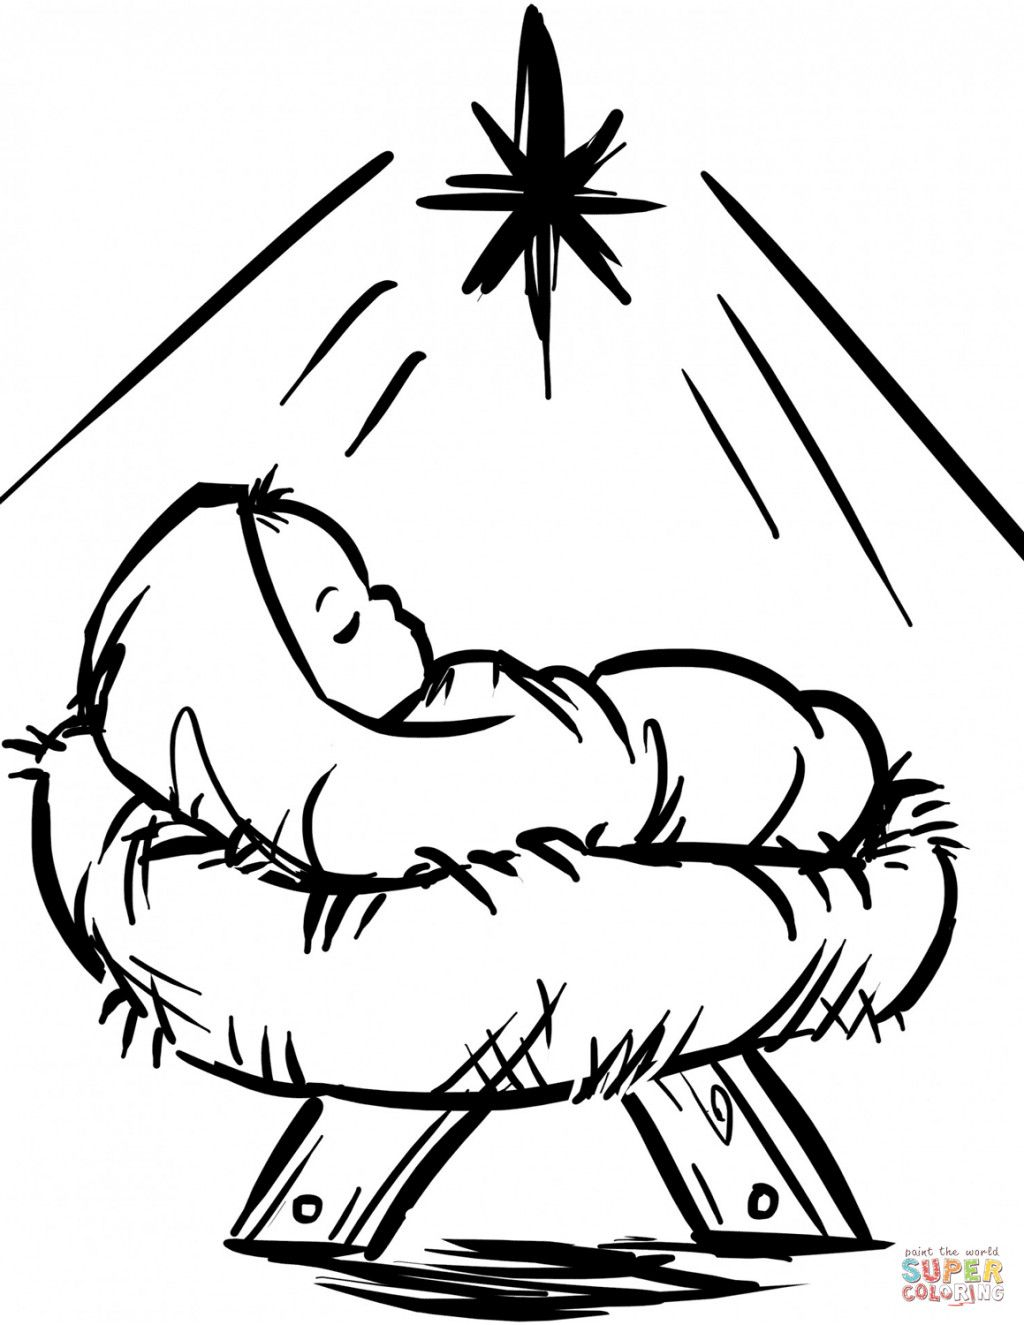 Baby Jesus Coloring Page Elegant Coloring Books Remarkable Baby Jesus Coloring Page Image Christmas Coloring Pages Jesus Coloring Pages Christmas Drawing